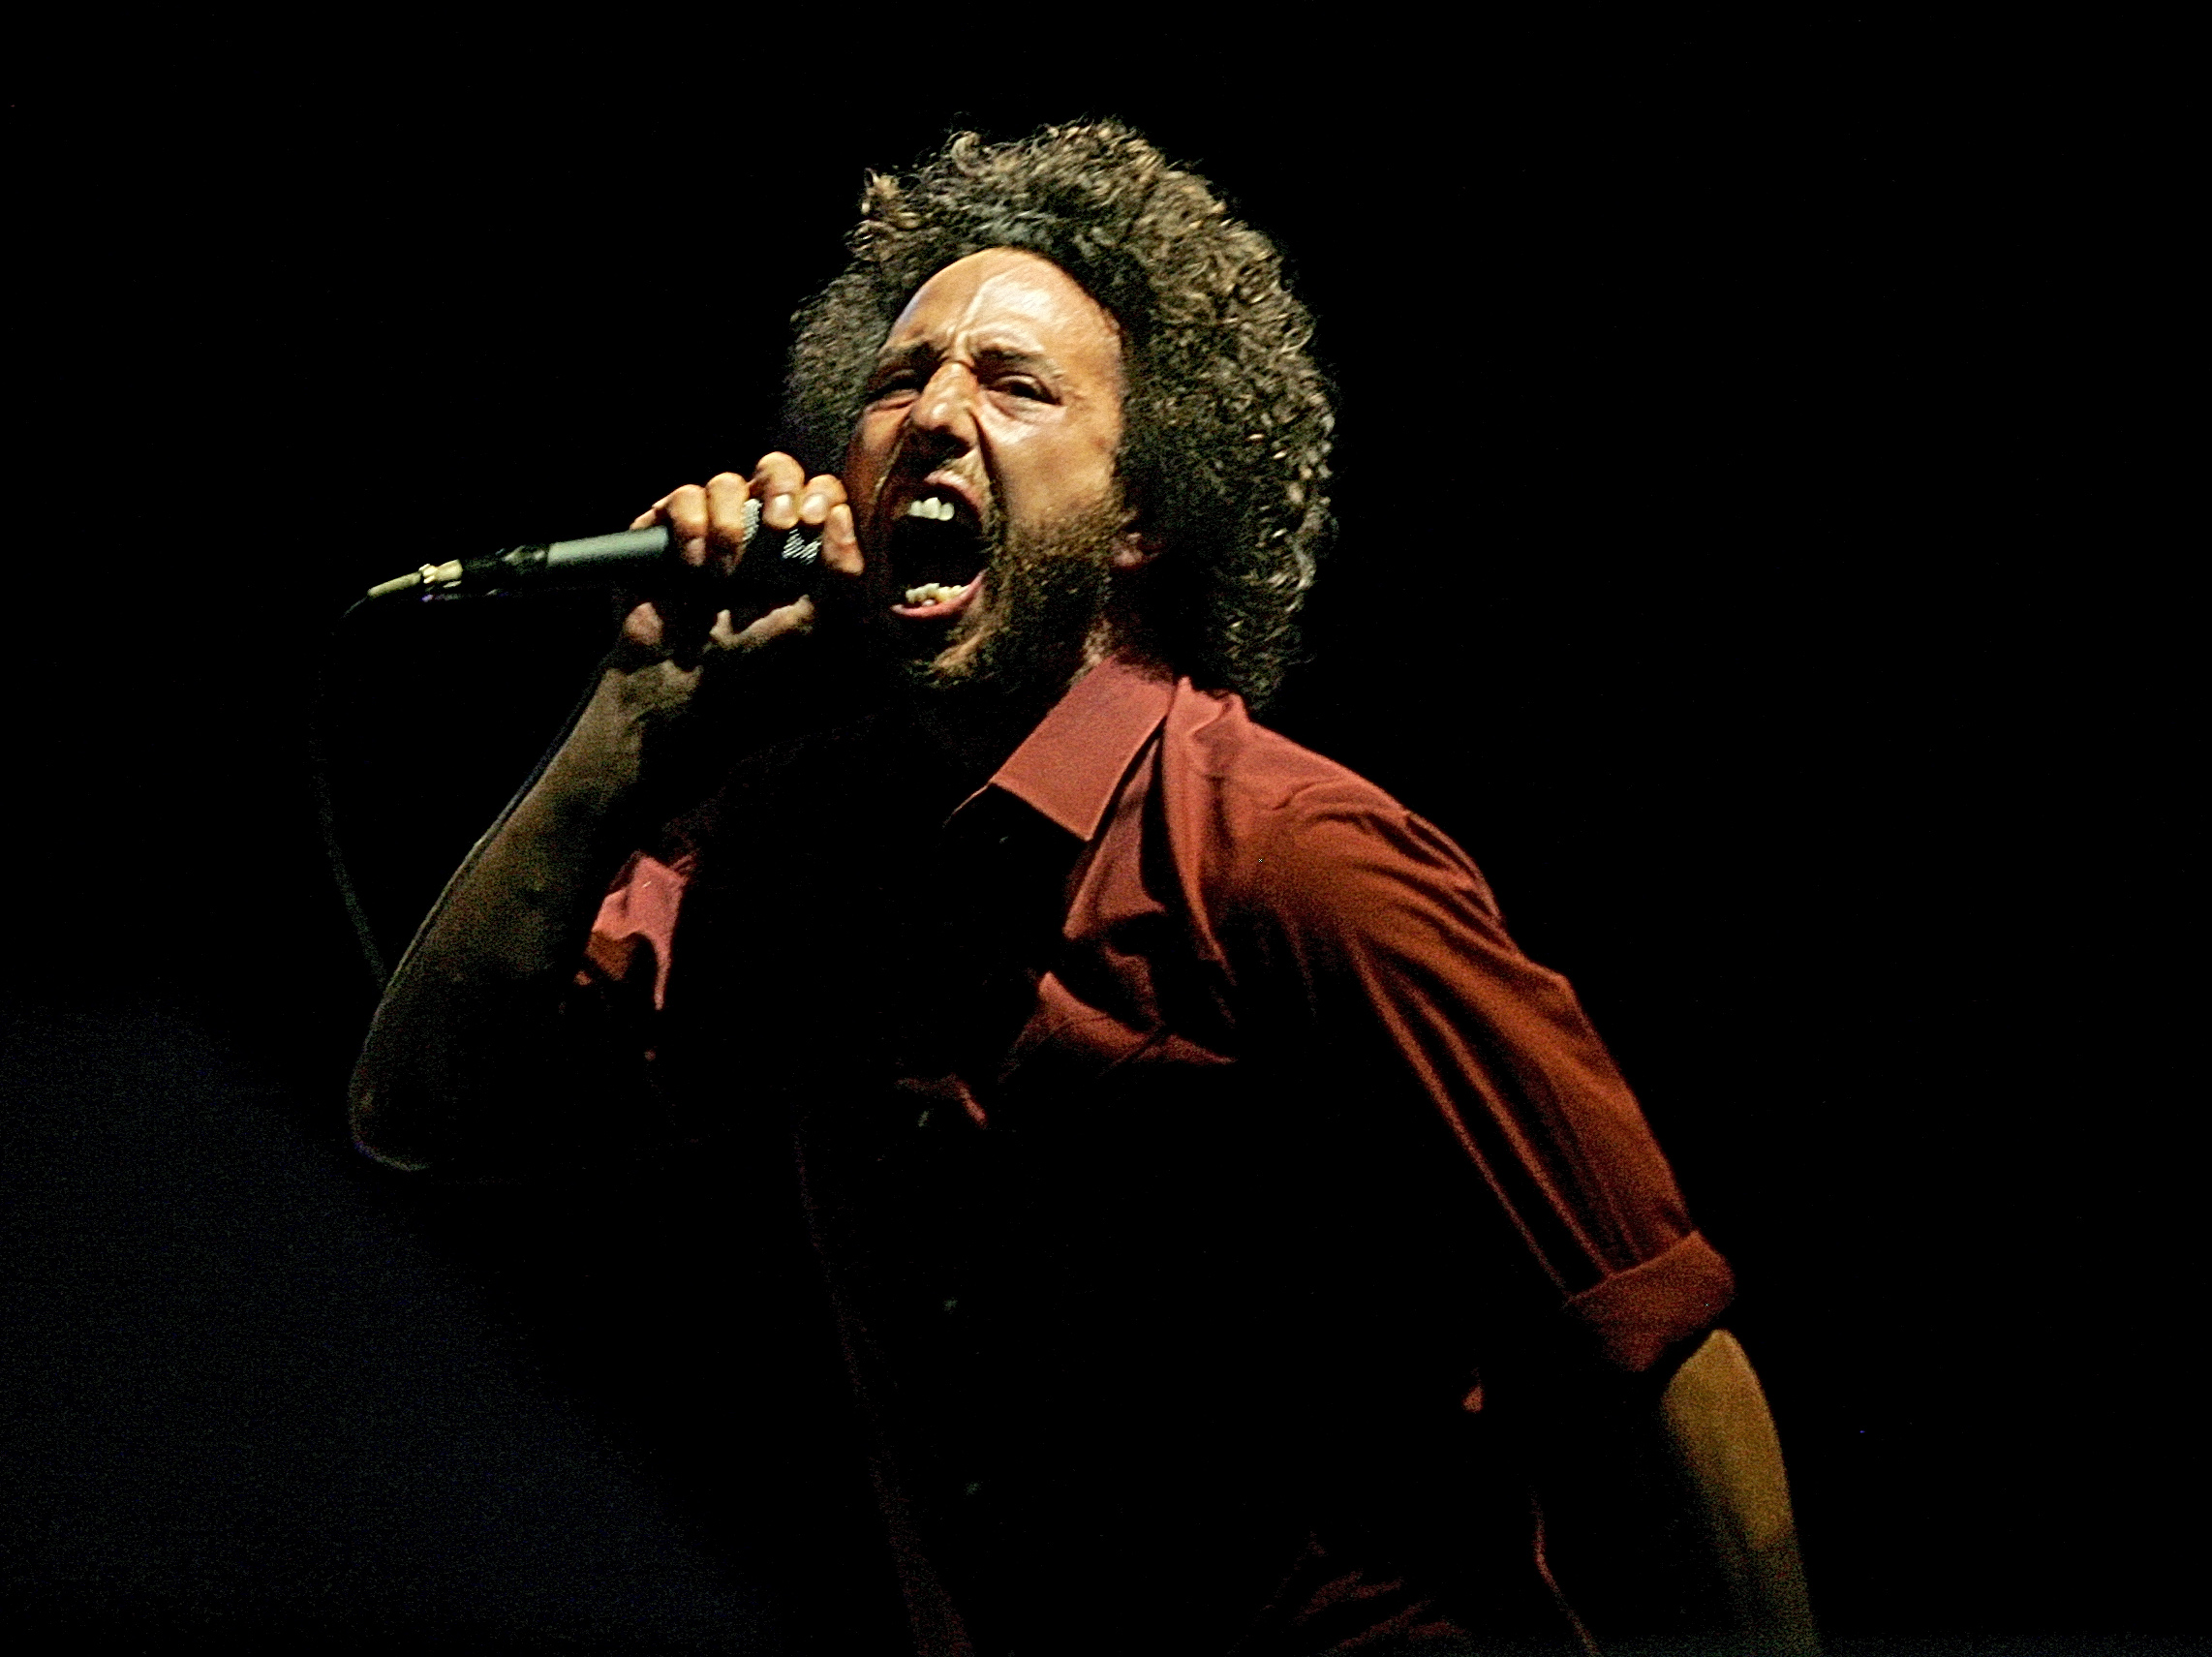 Zack De La Rocha Drops Debut Single